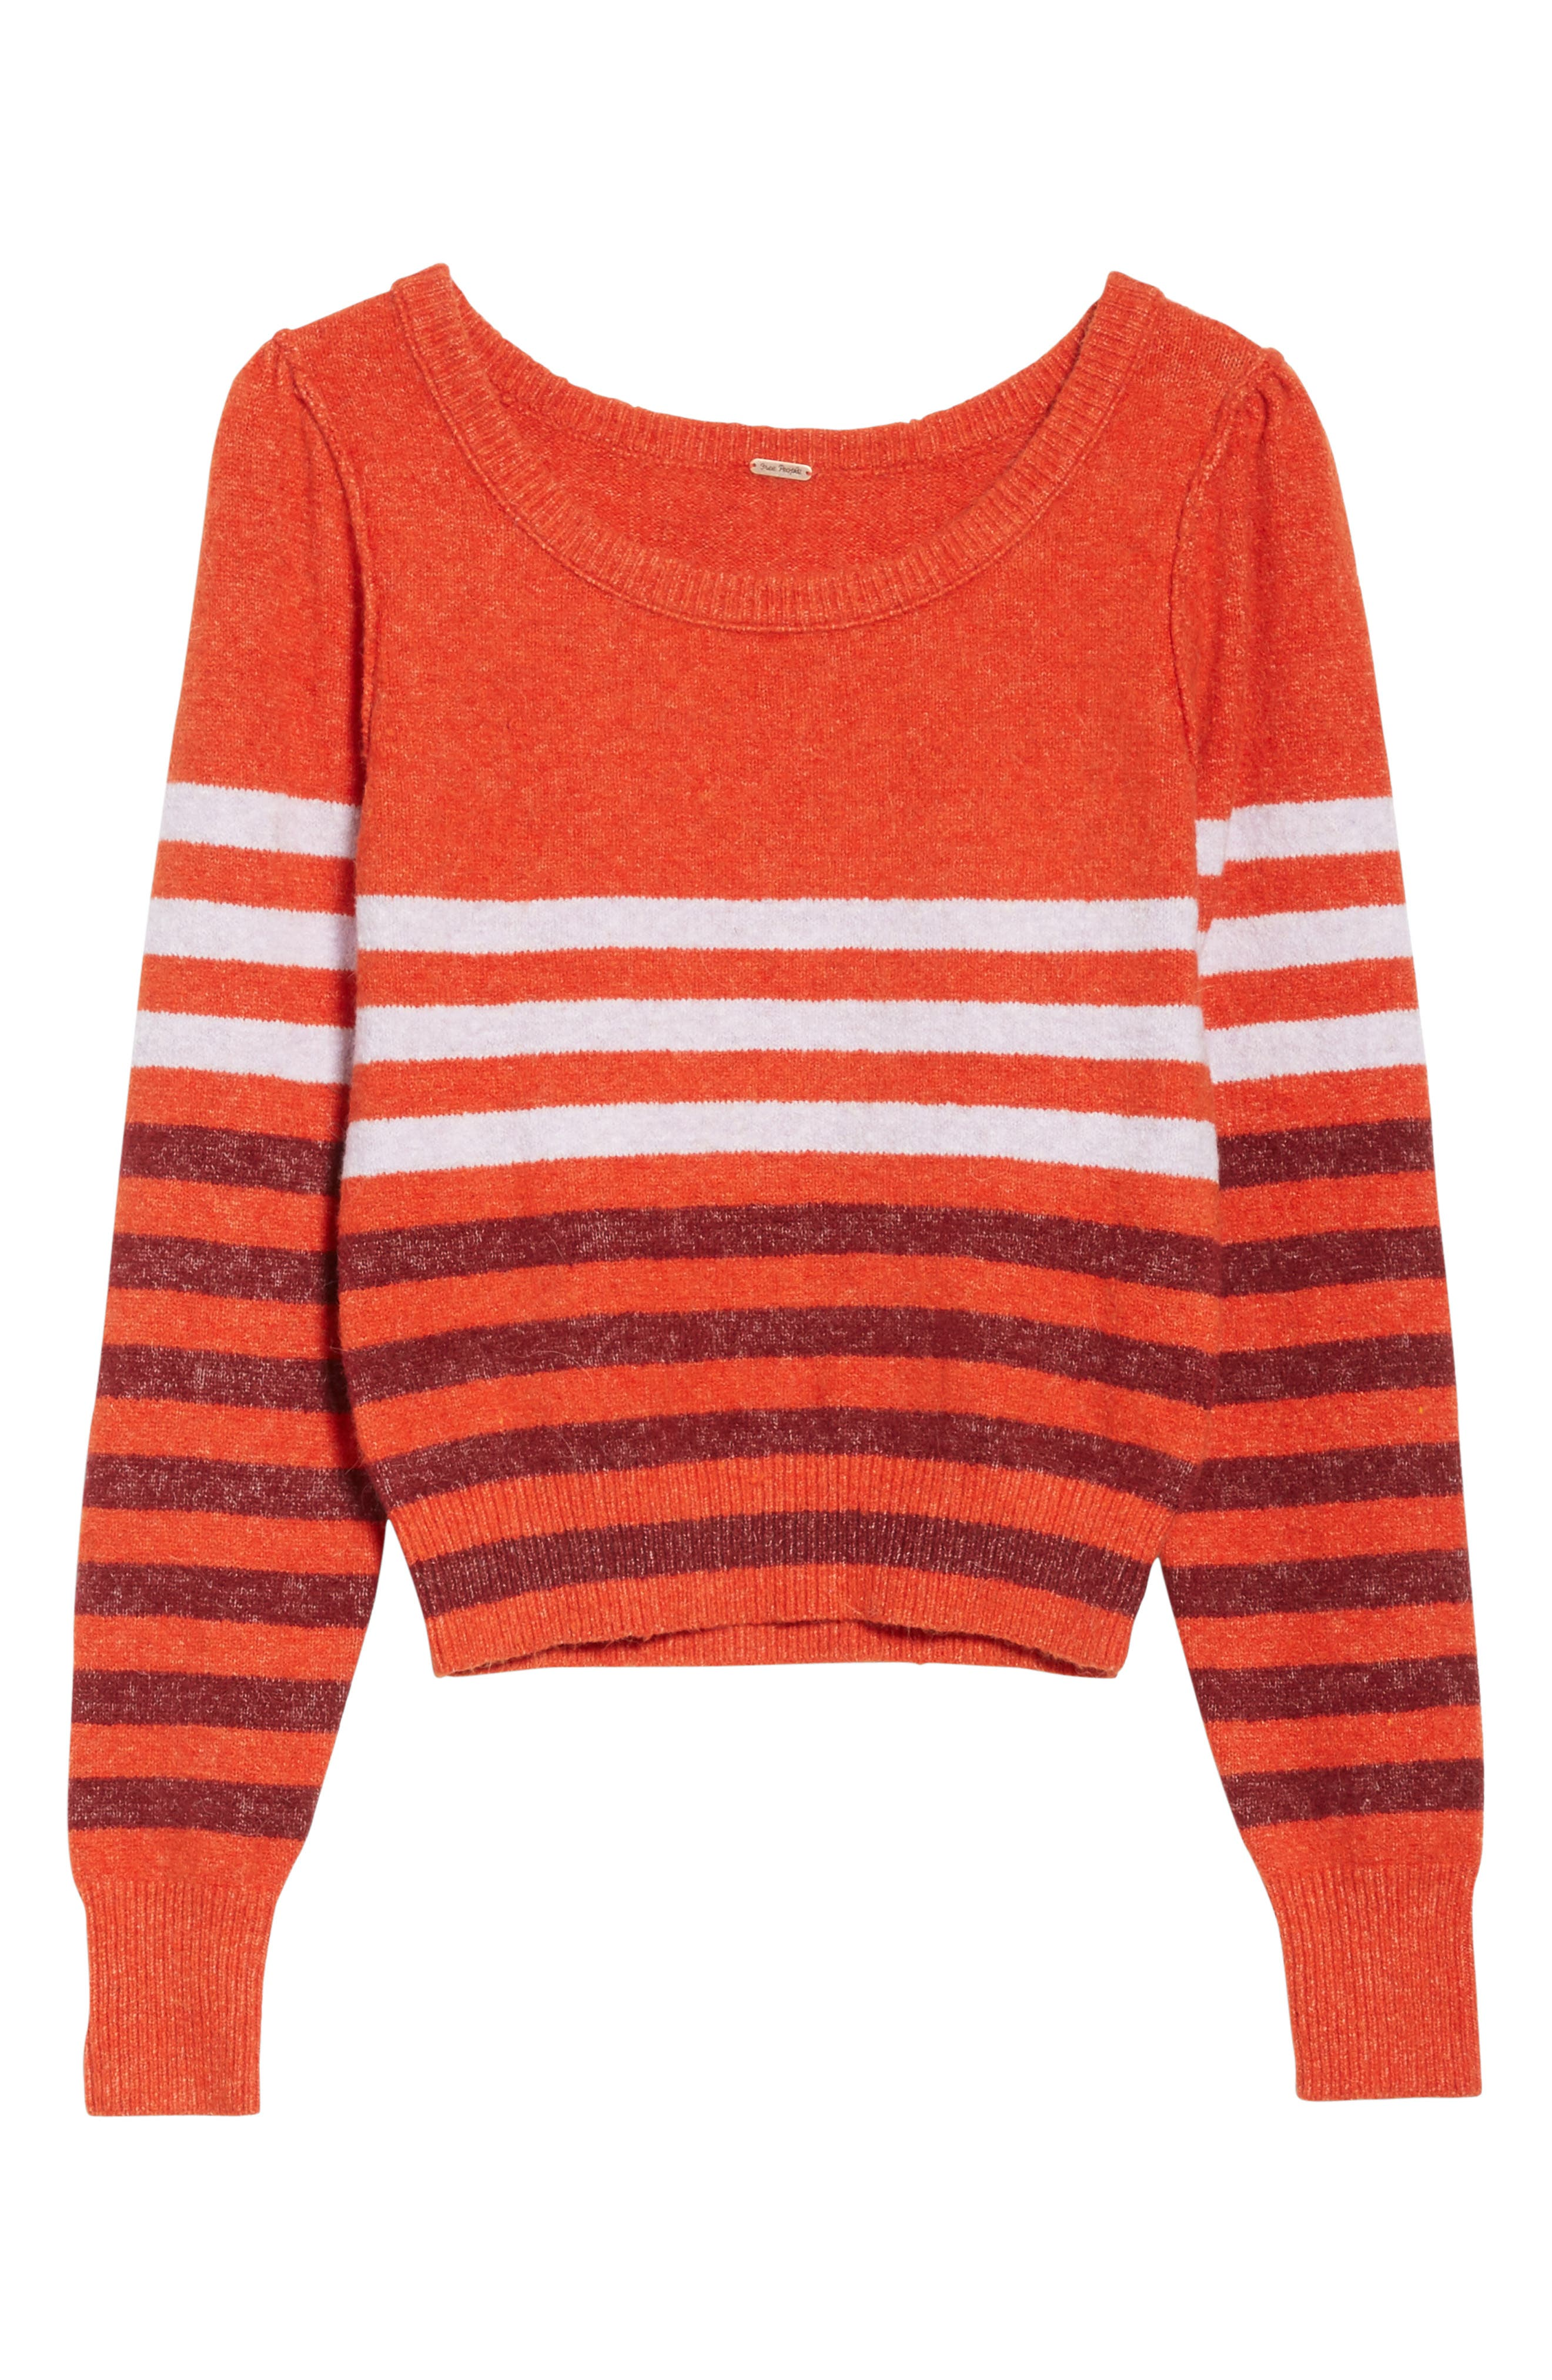 Complete Me Sweater,                             Alternate thumbnail 12, color,